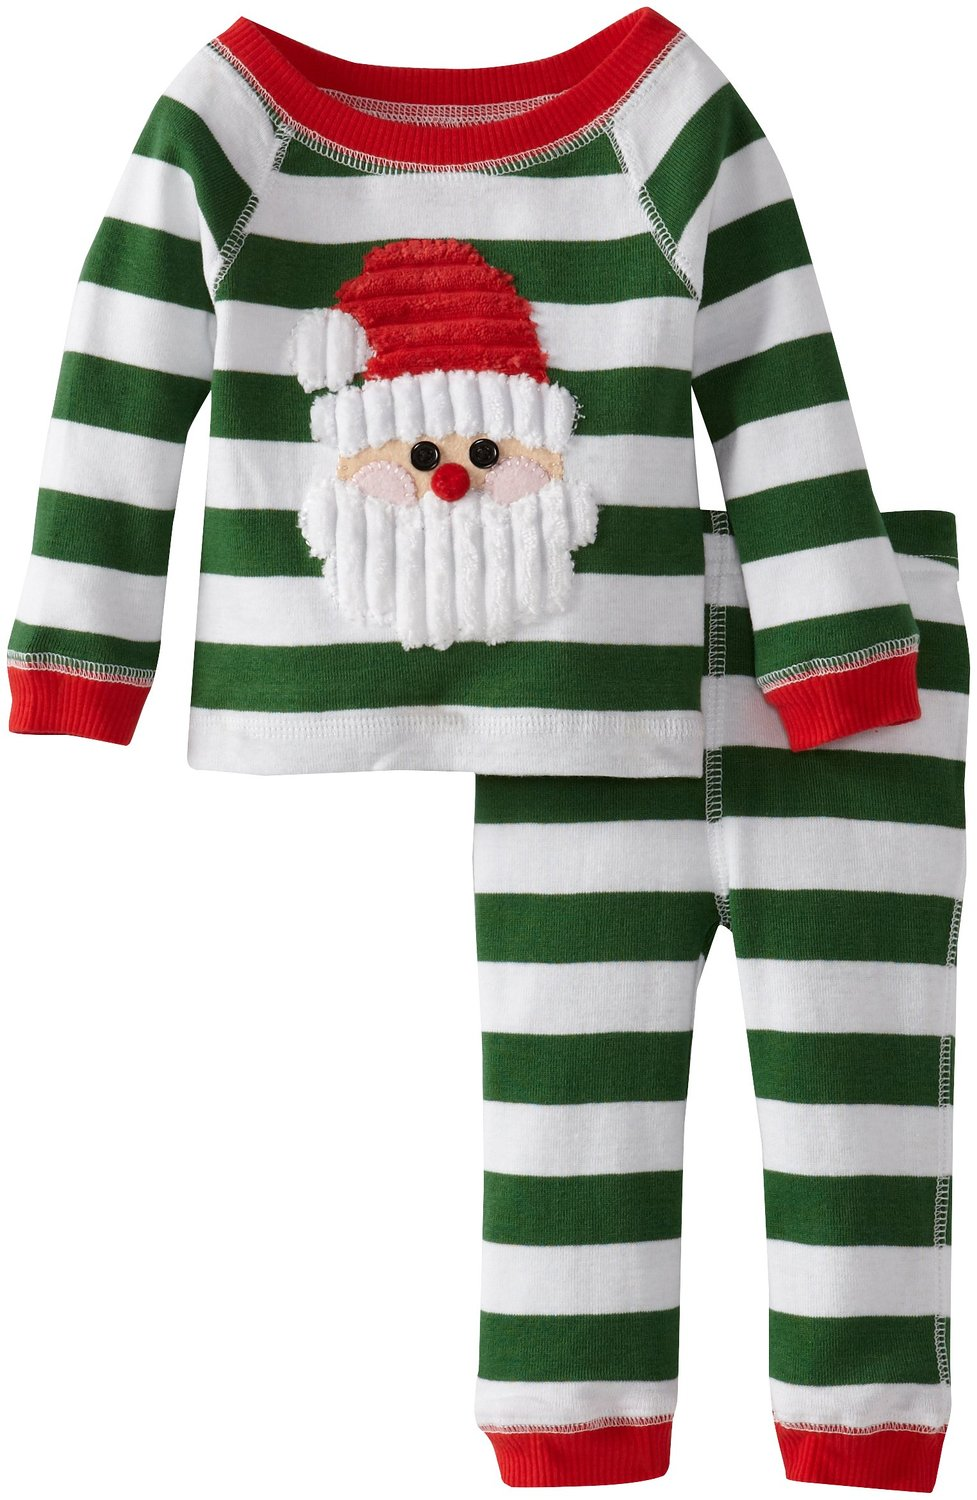 Shop women's Christmas pajamas, made with premium materials and designed to improve your snuggle game by at least %. Lock down your ultra-soft and stylish Christmas pajamas now! There's only a few more sleeps til' Christmas! Women's Sweet Baby Jesus Sweater. $ $ Women's Cornhole Ugly Christmas Sweater.